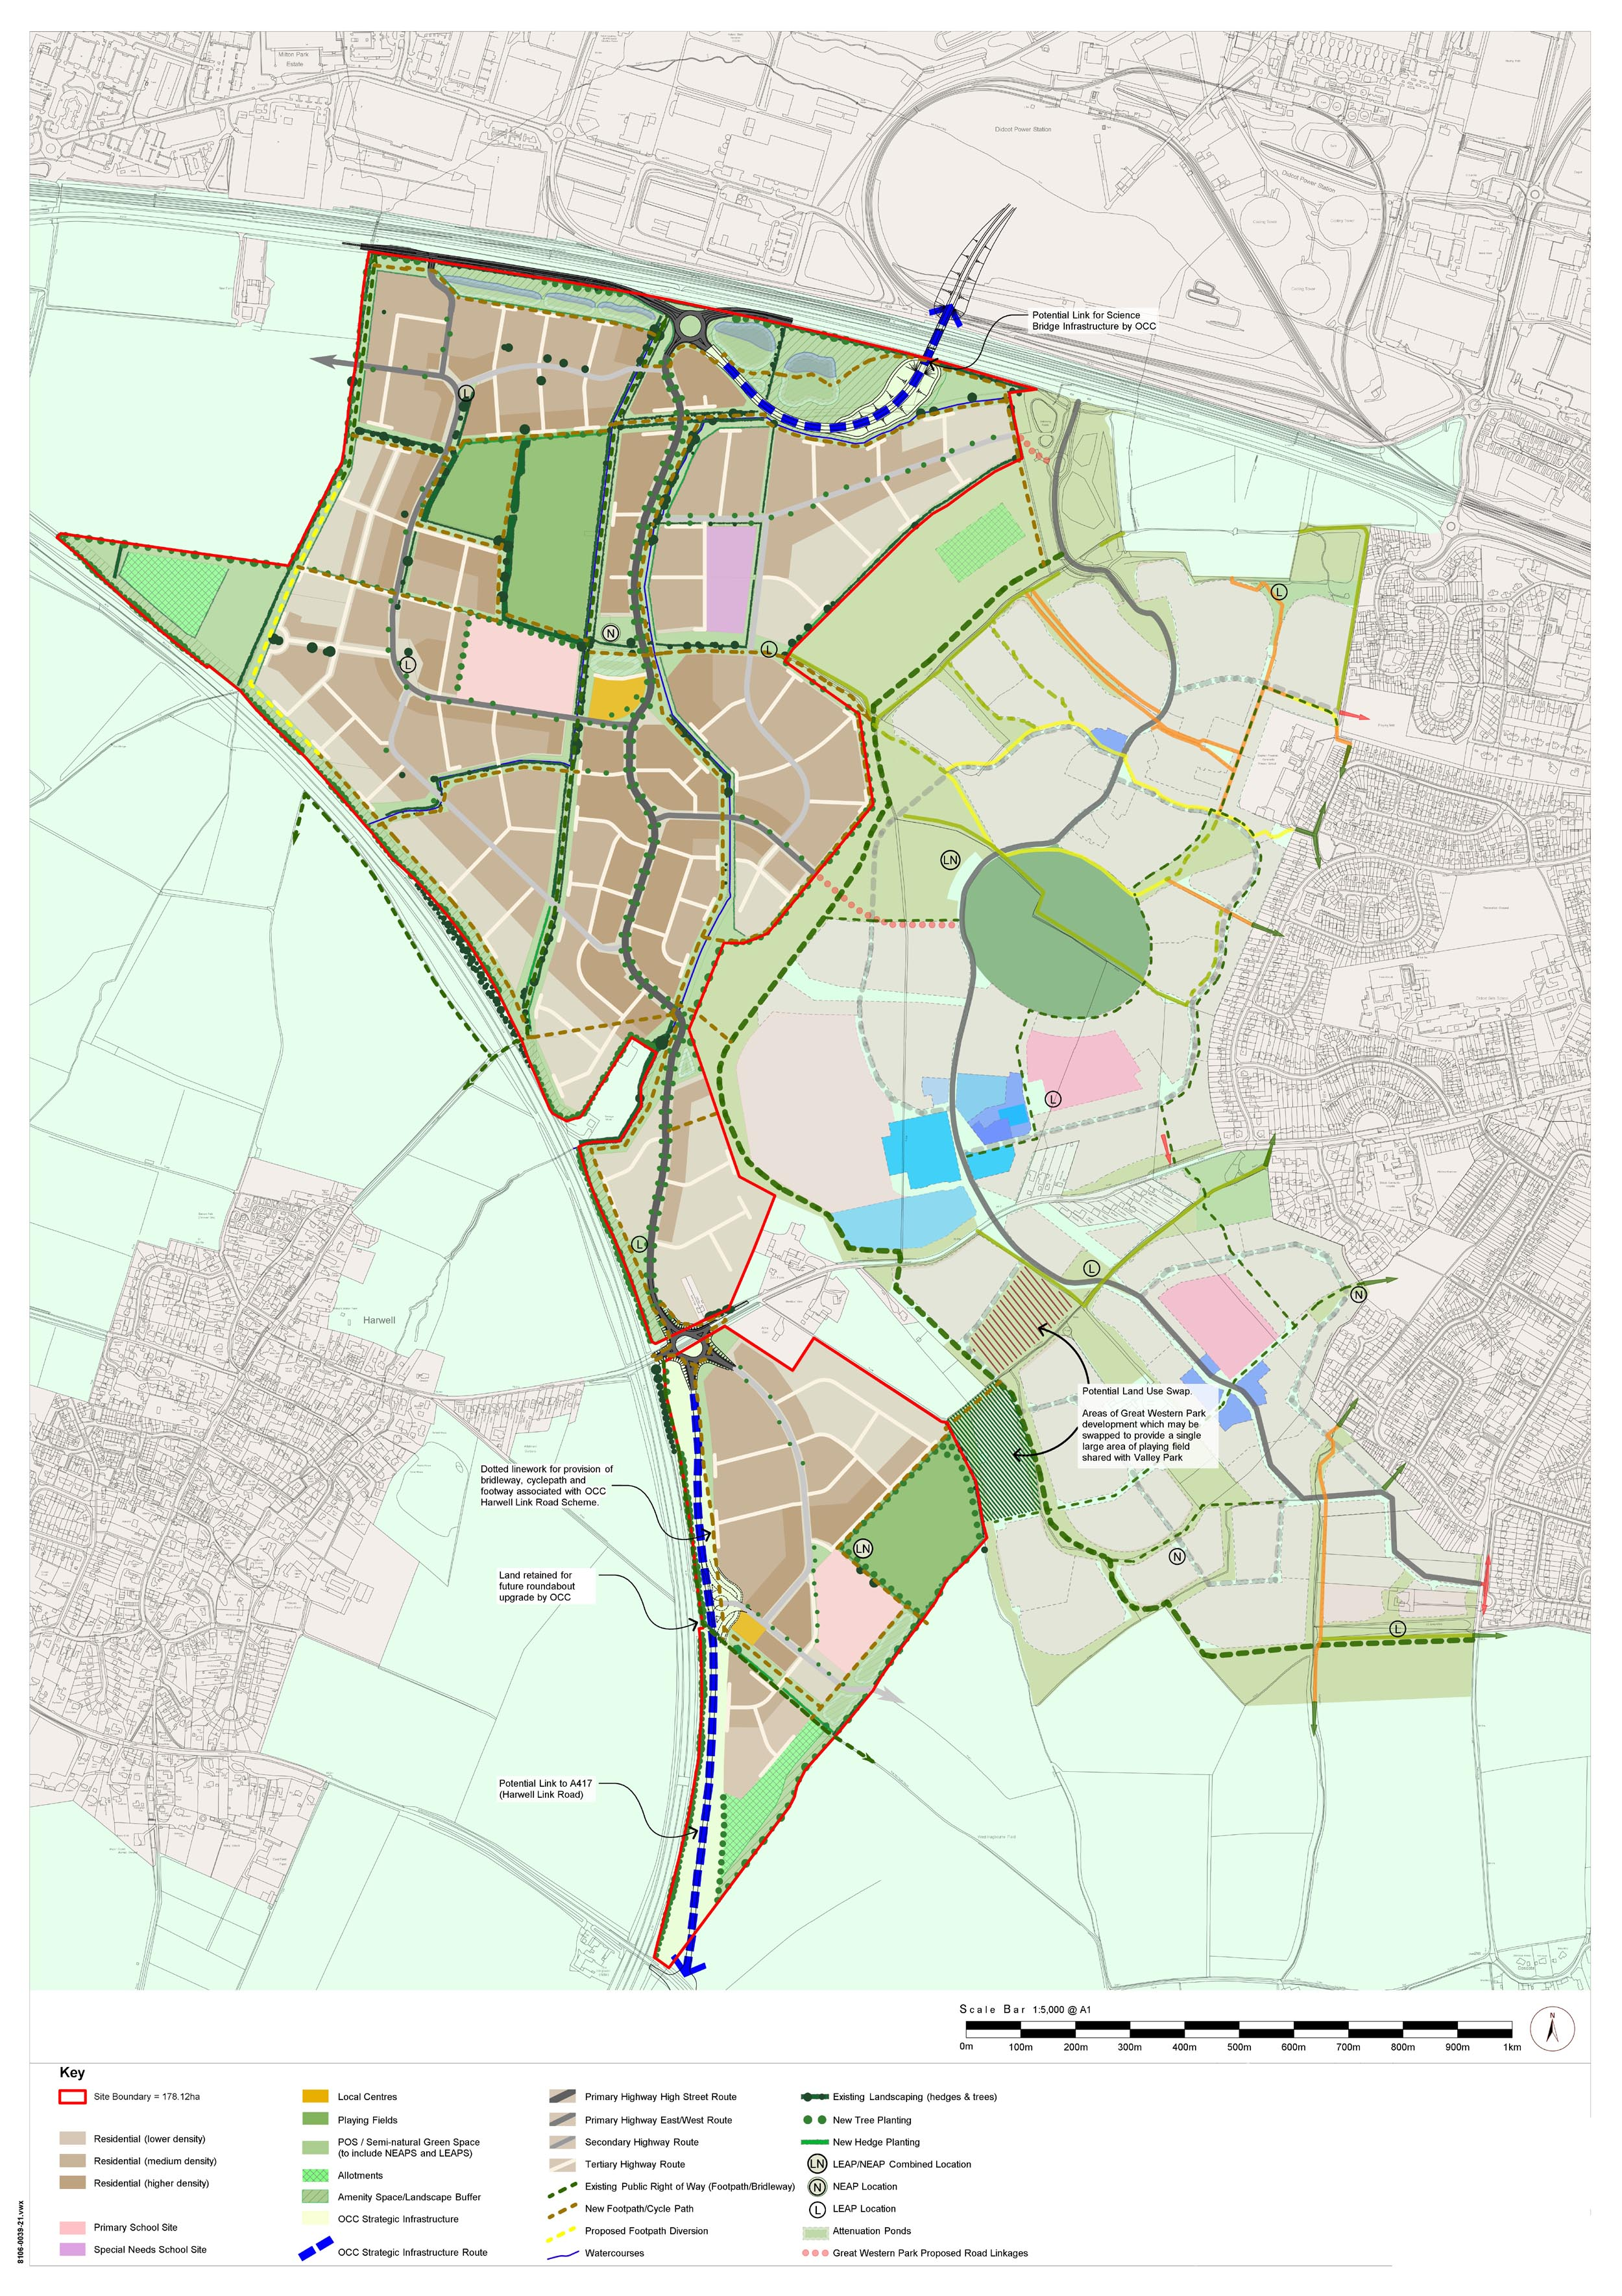 Valley Park Masterplan